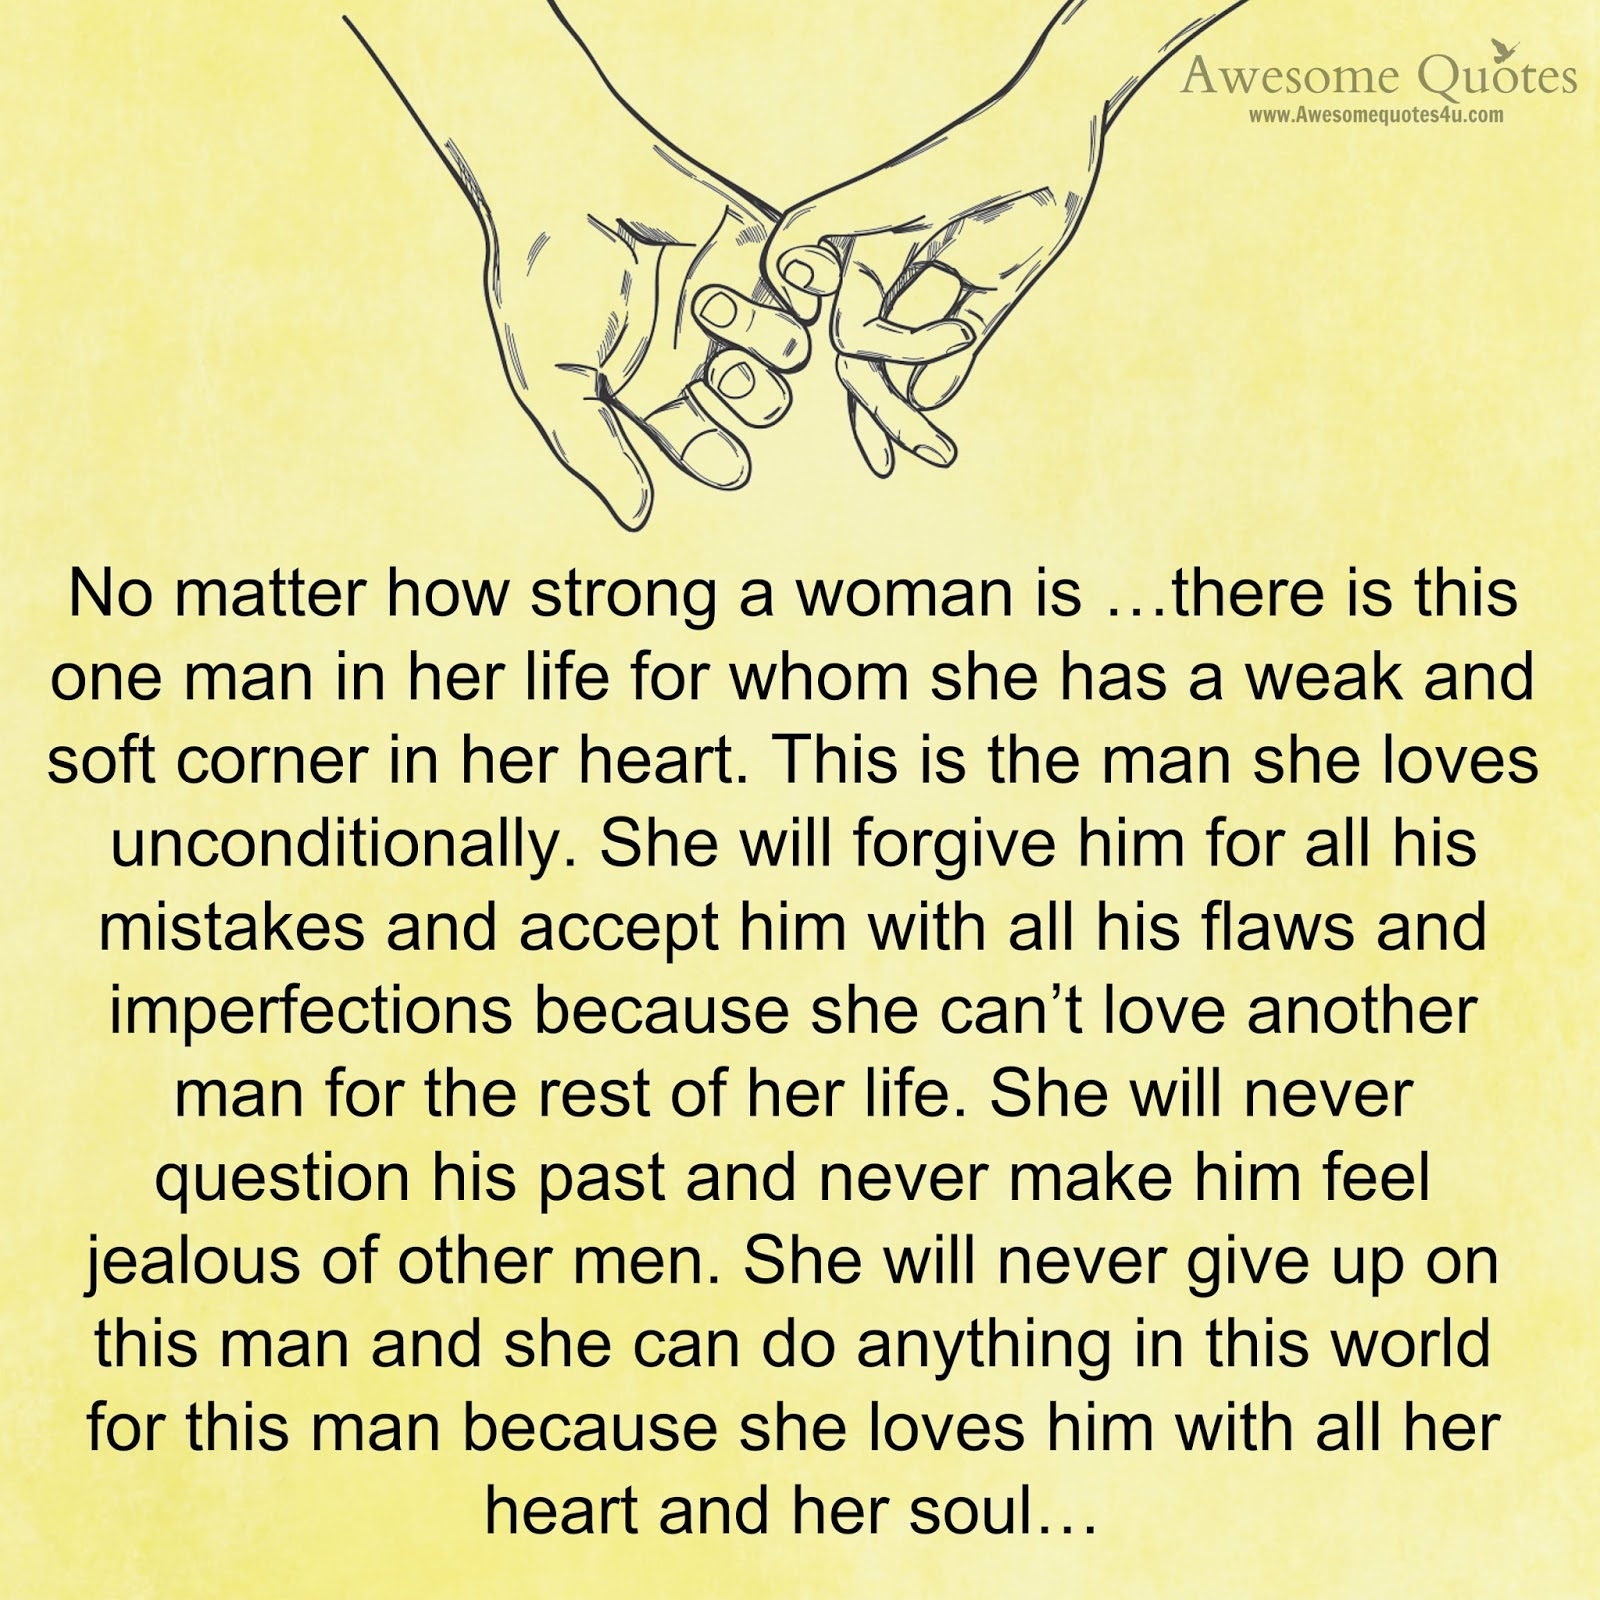 Awesome Quotes When A Woman Loves A Man